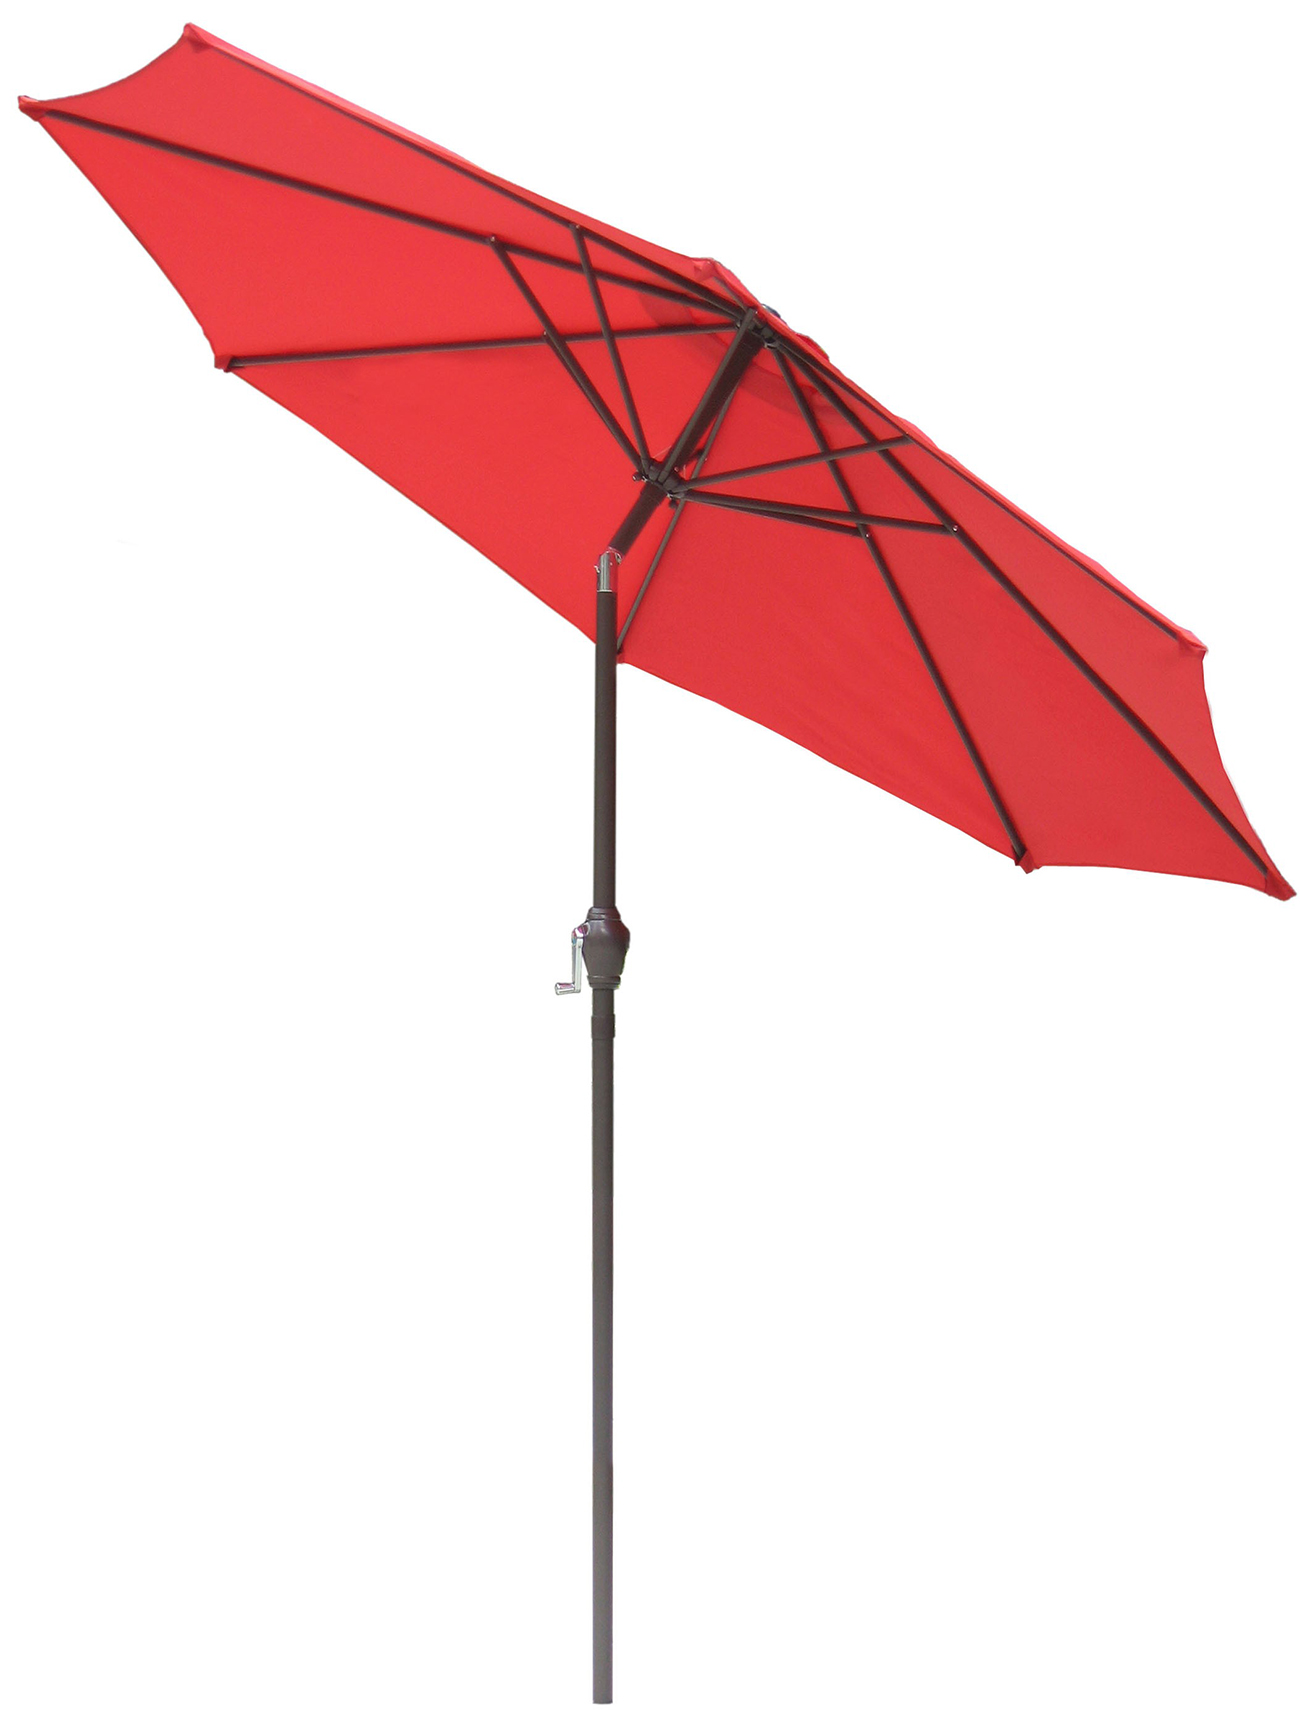 Patio Umbrella Crank Diagram: NEW 9' Outdoor Steel Patio Tilt Umbrella W/Crank Sunshade